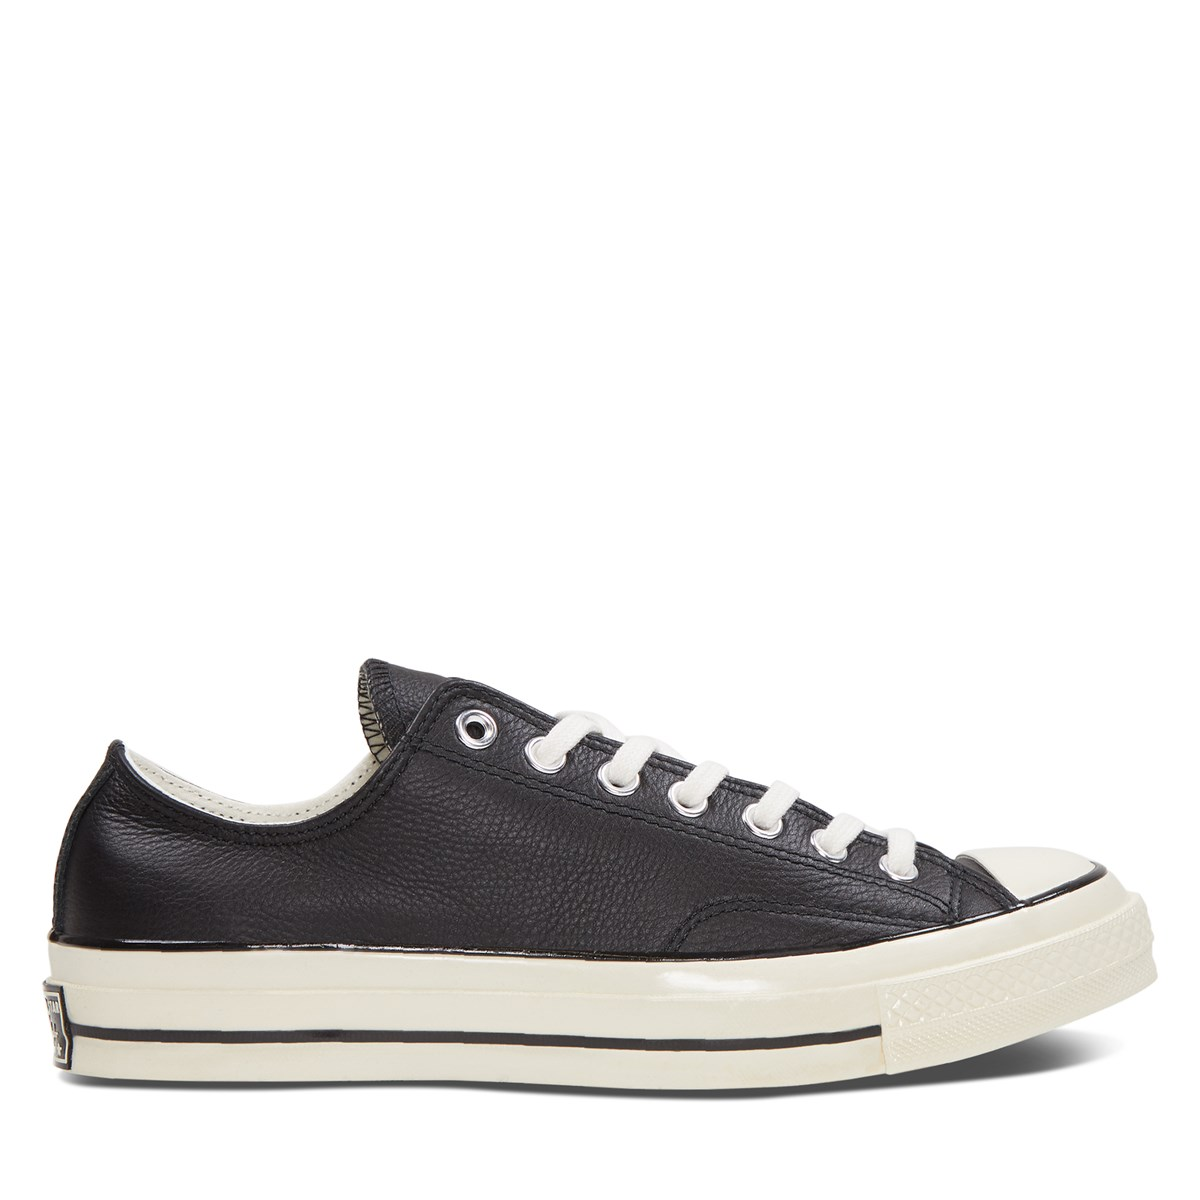 Men's Chuck 70 Low Top Sneakers in Black Leather